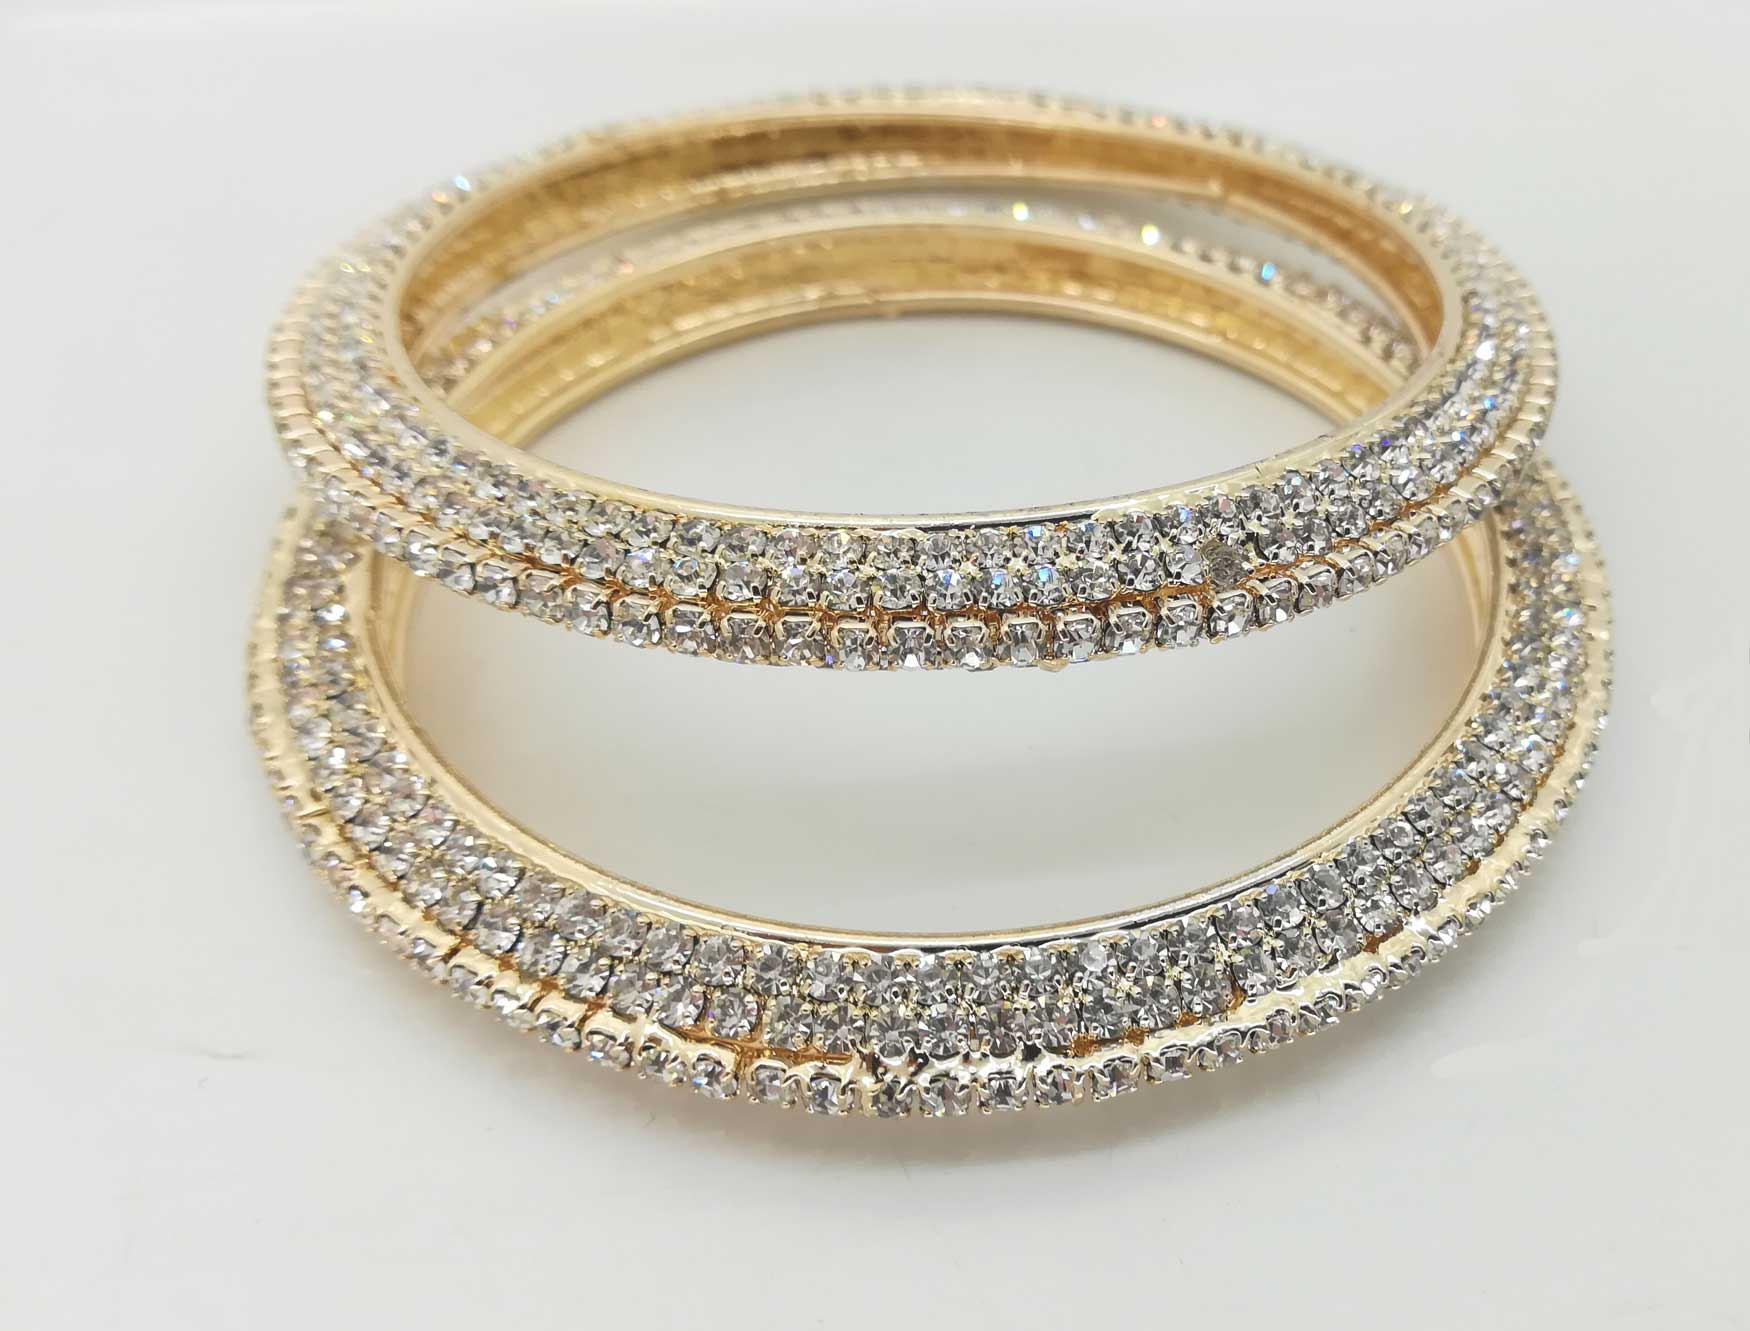 Gorgeous rose gold diamante bangles